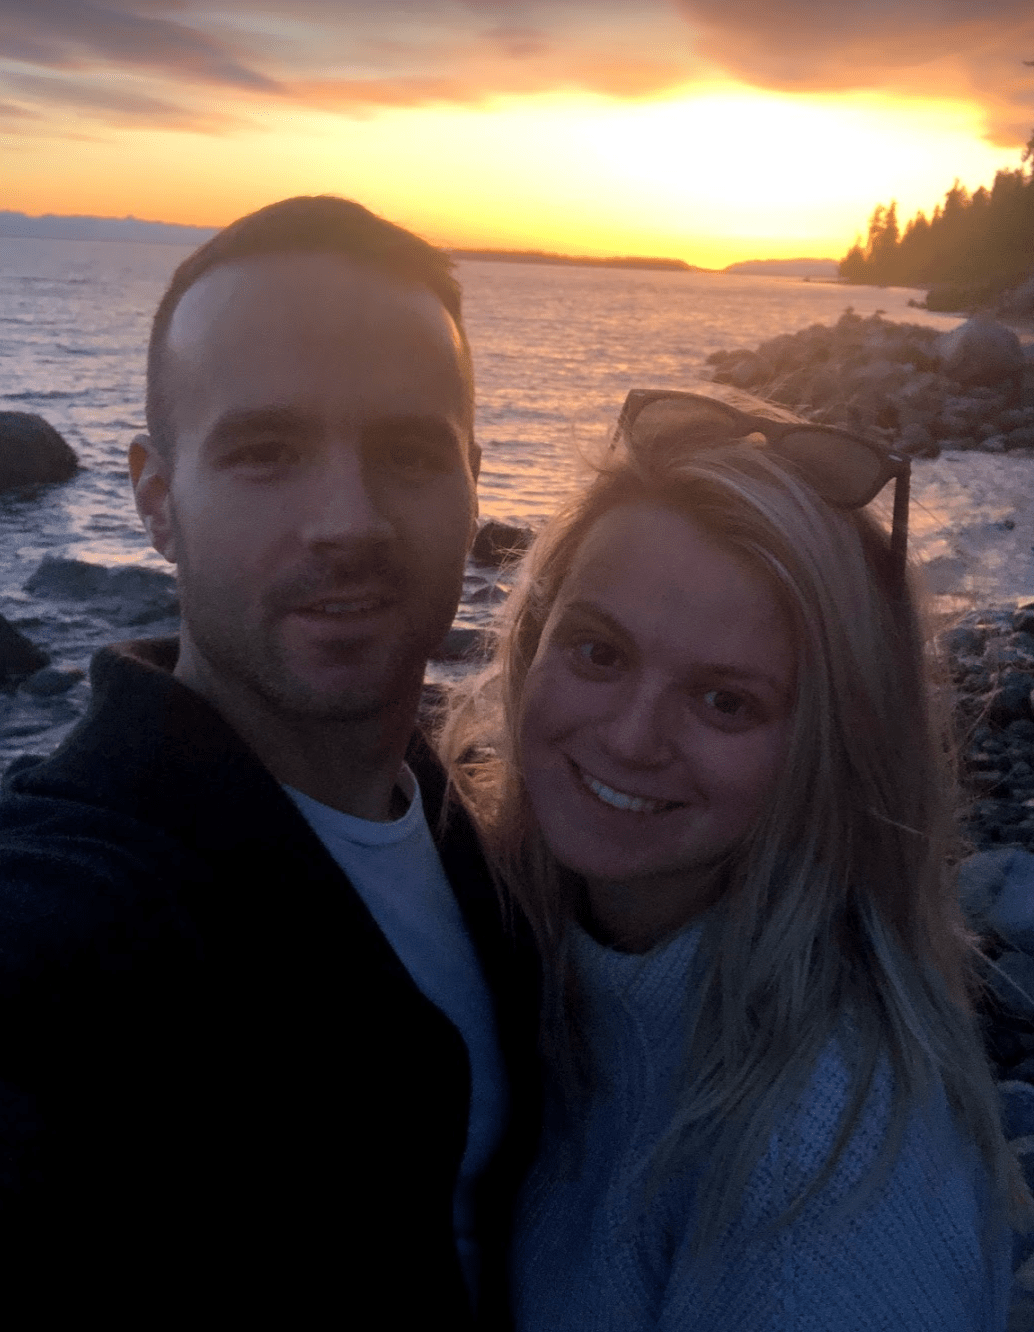 Laura and Jordan with the sunset of the north Sunshine Coast, British Columbia